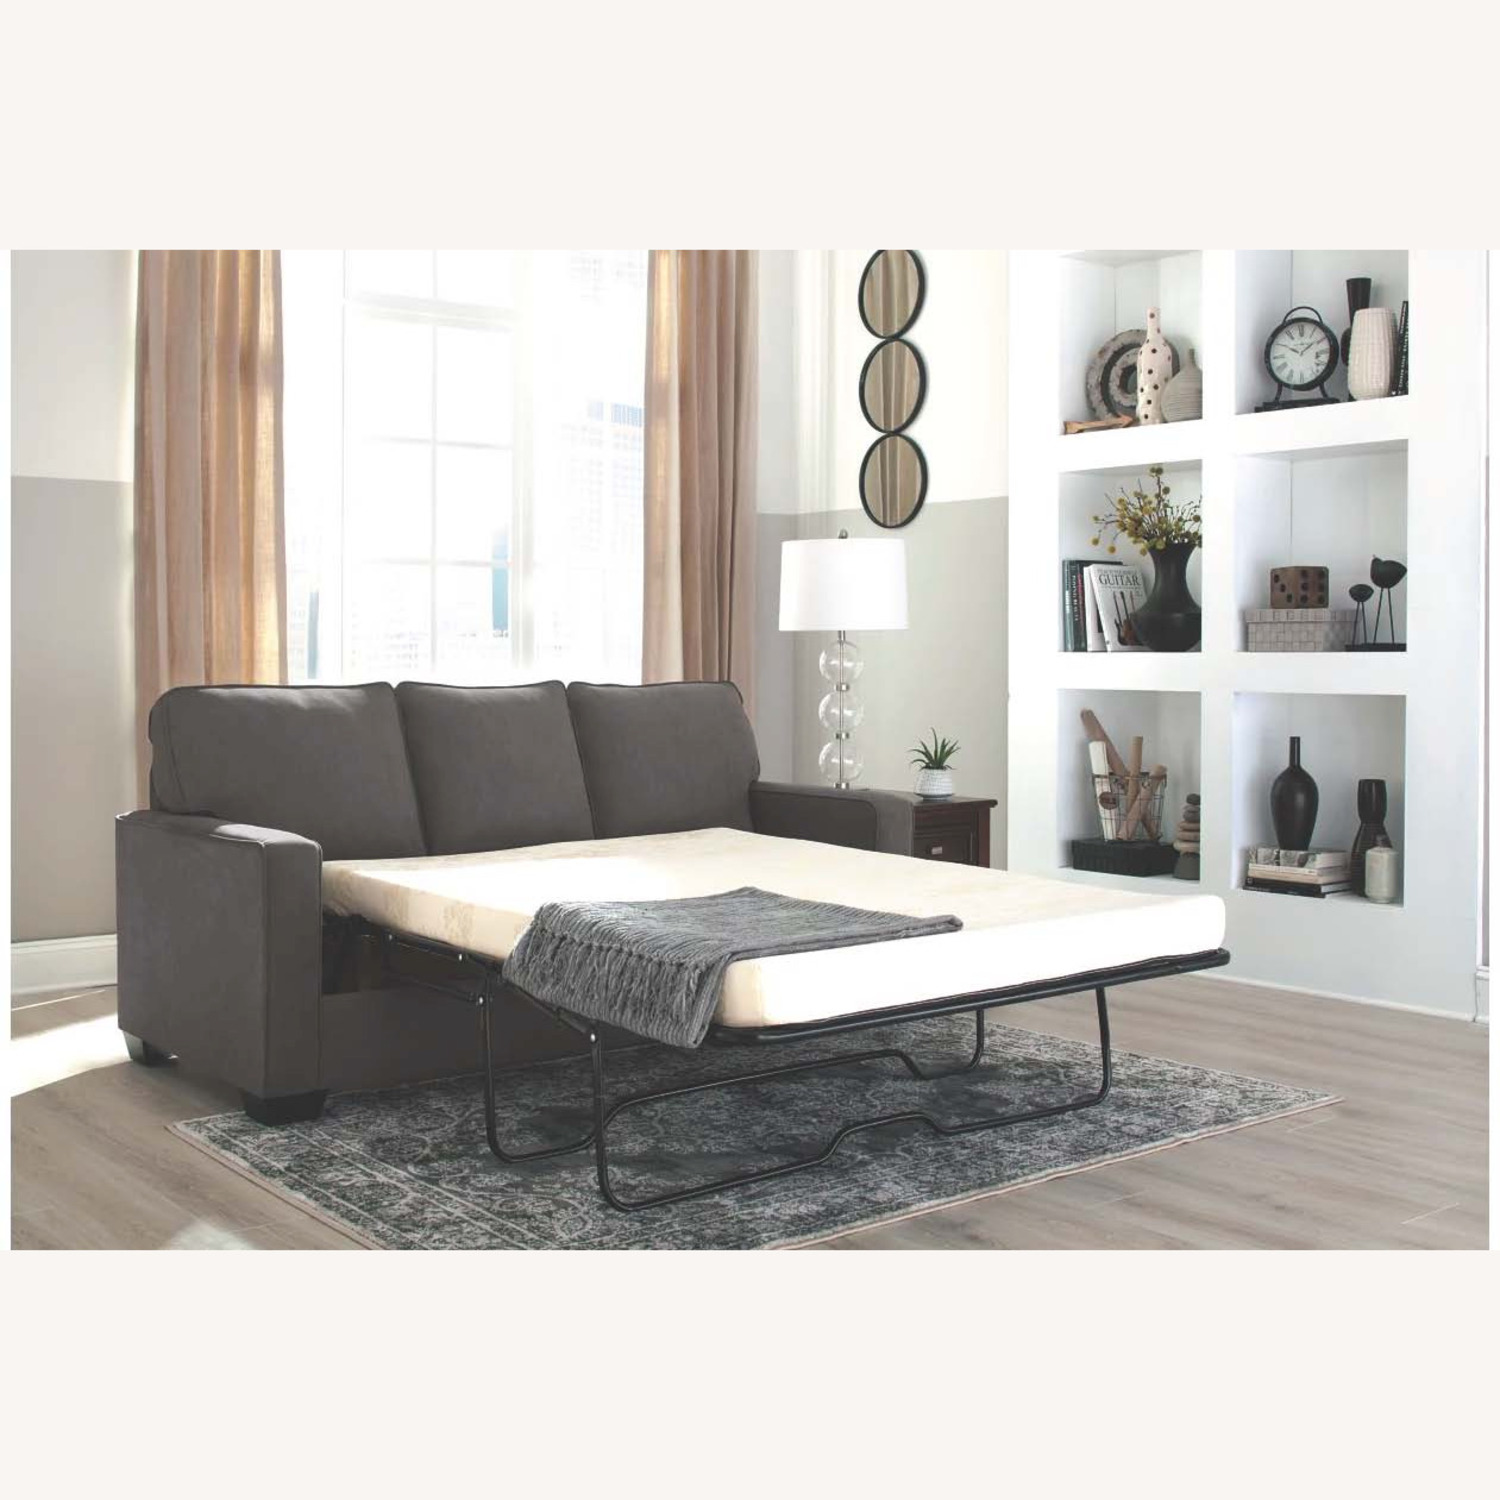 Ashley Furniture ZEB Sleeper Sofa - image-16